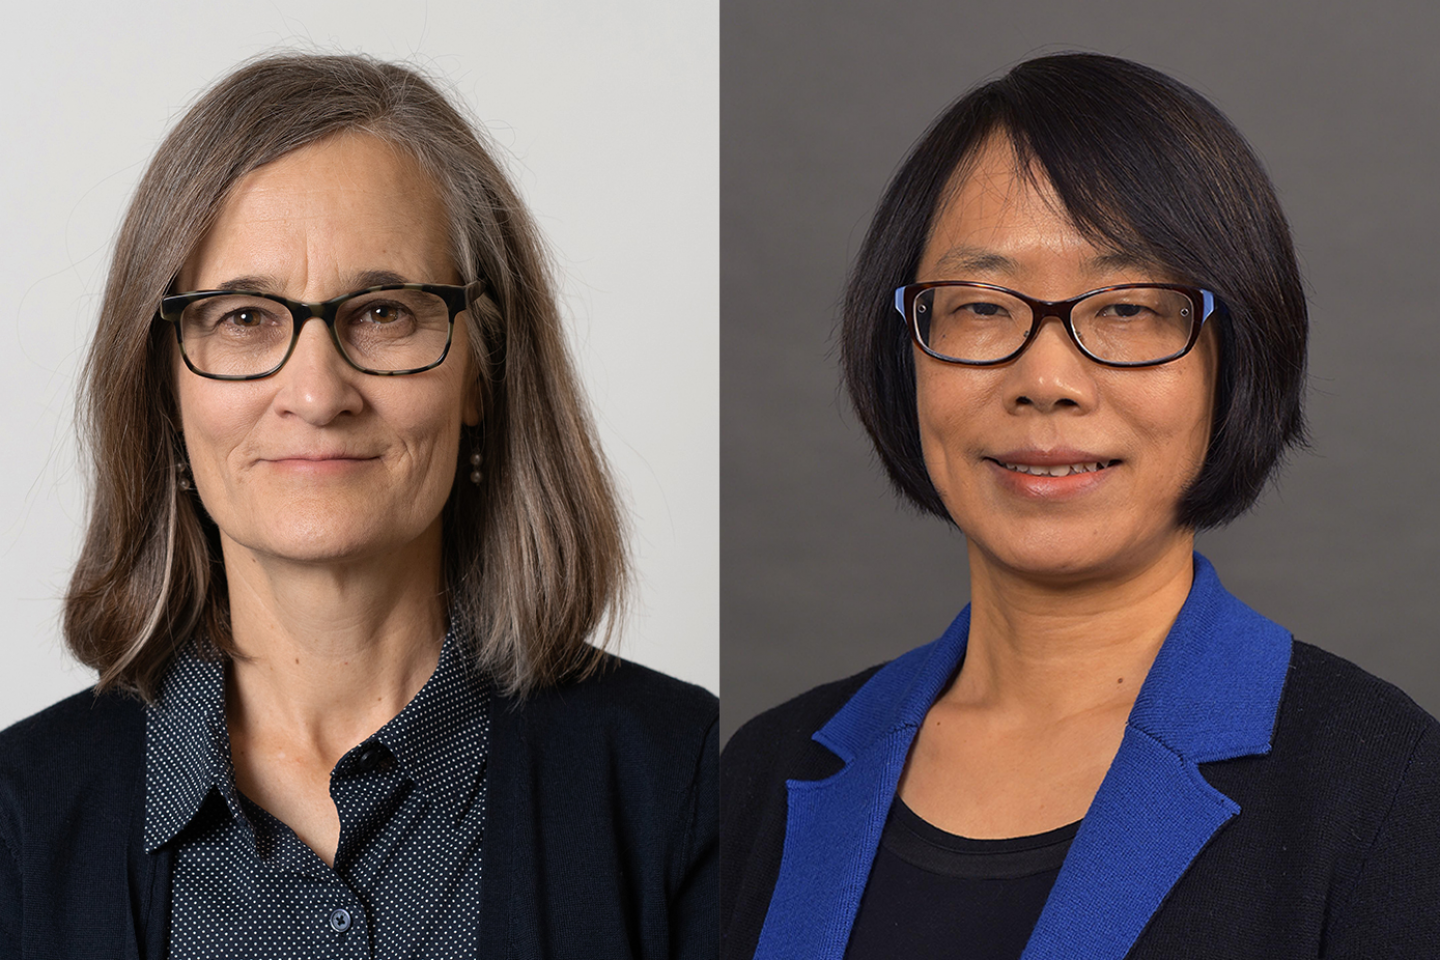 Dr. Ann Miles and Dr. Ying Zeng